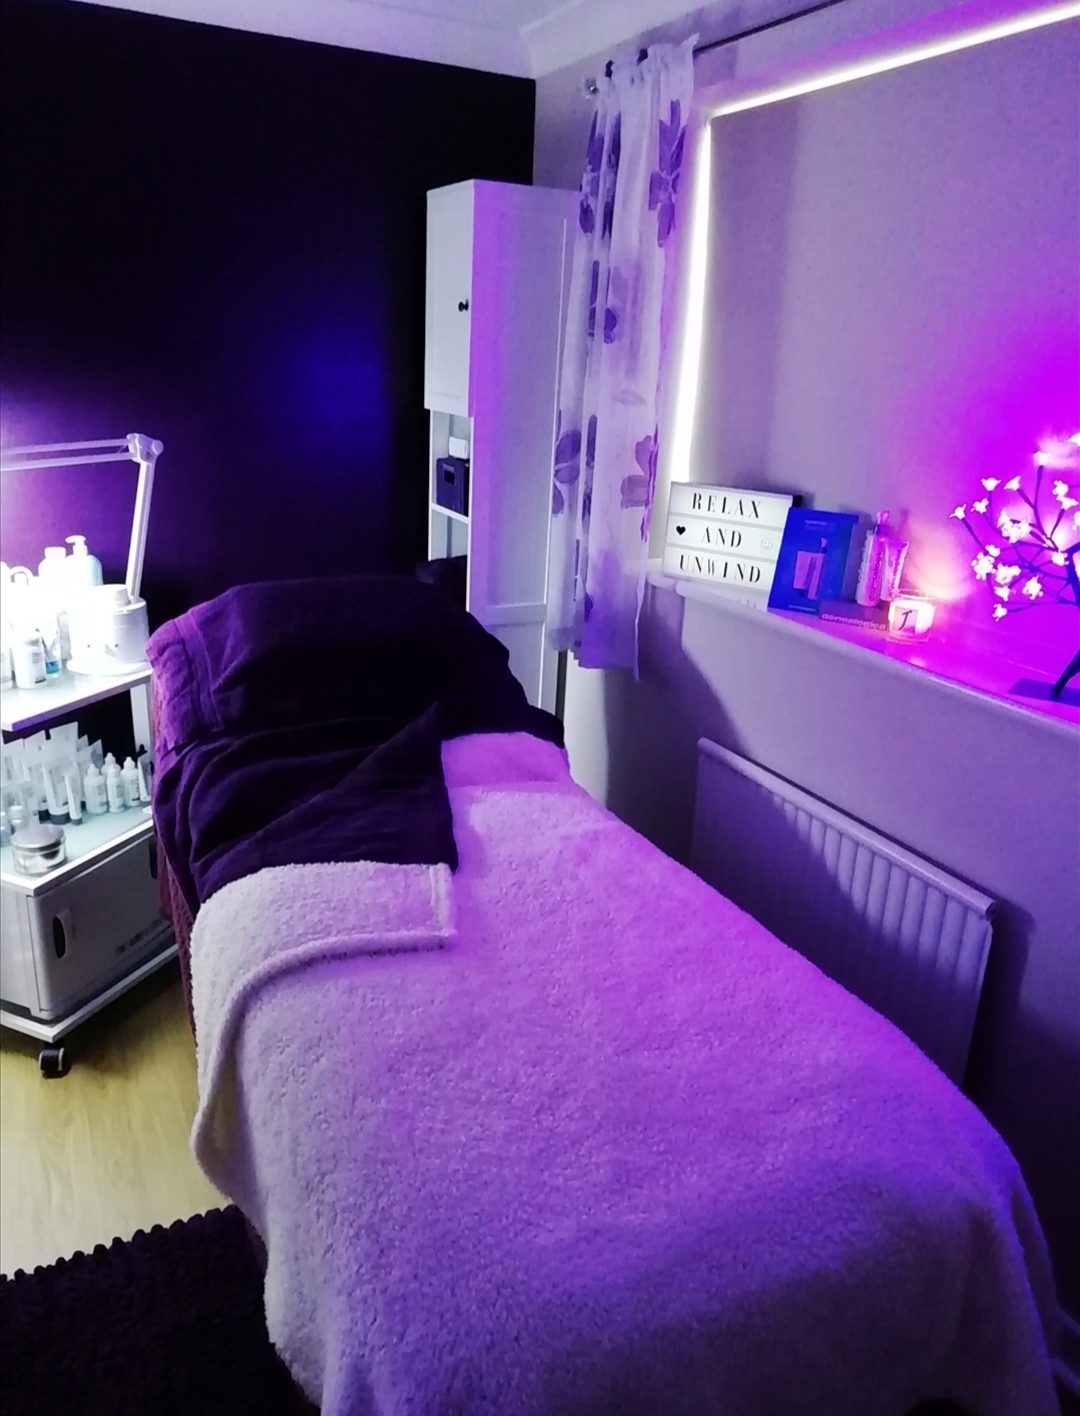 The Little Treatment Room